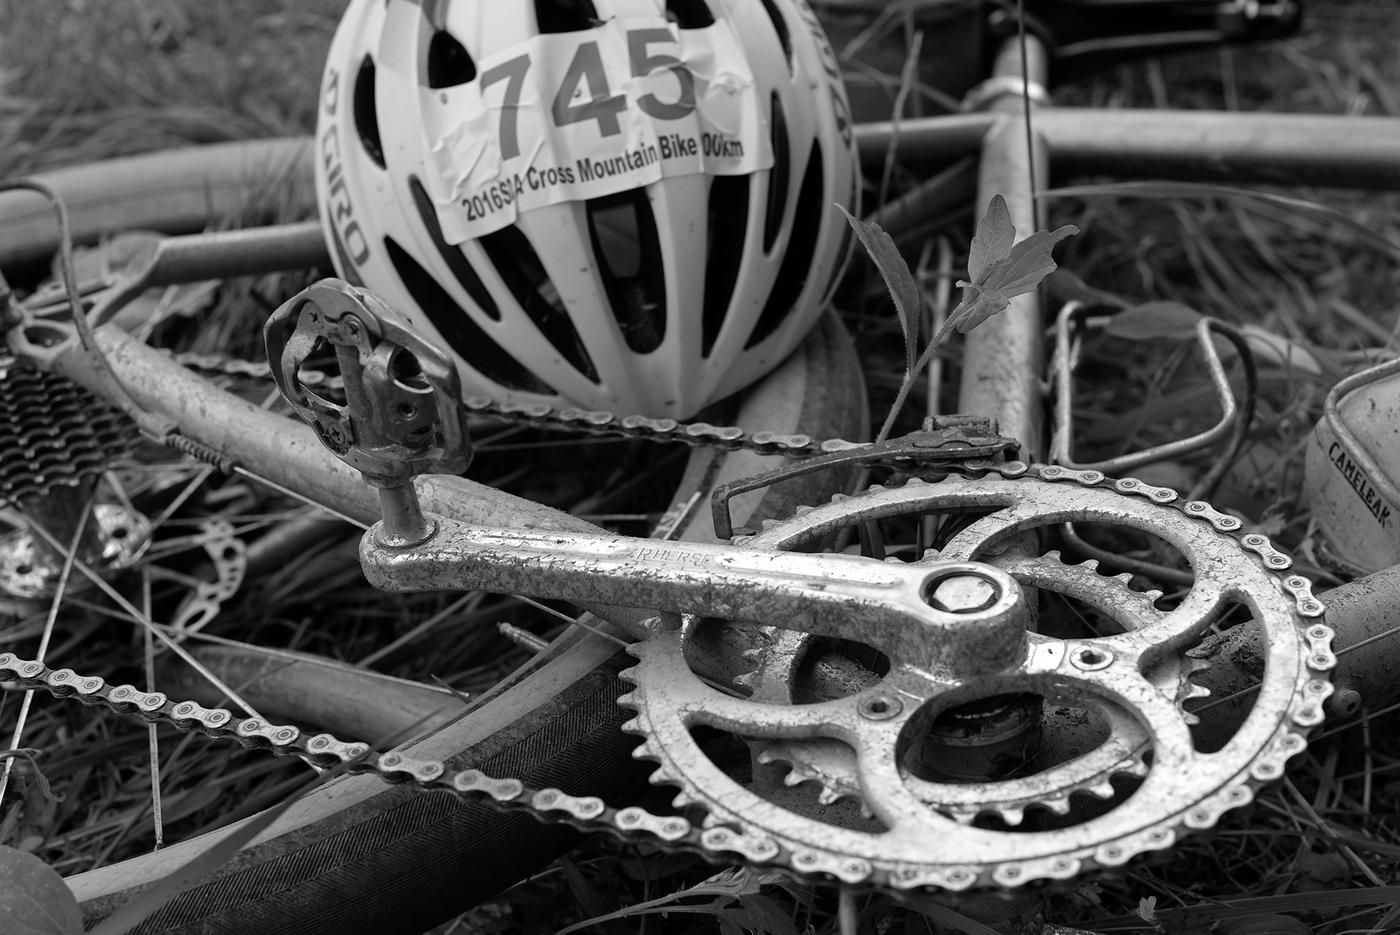 Fear Not: Rene Herse Chainrings are 12 Speed Compatible